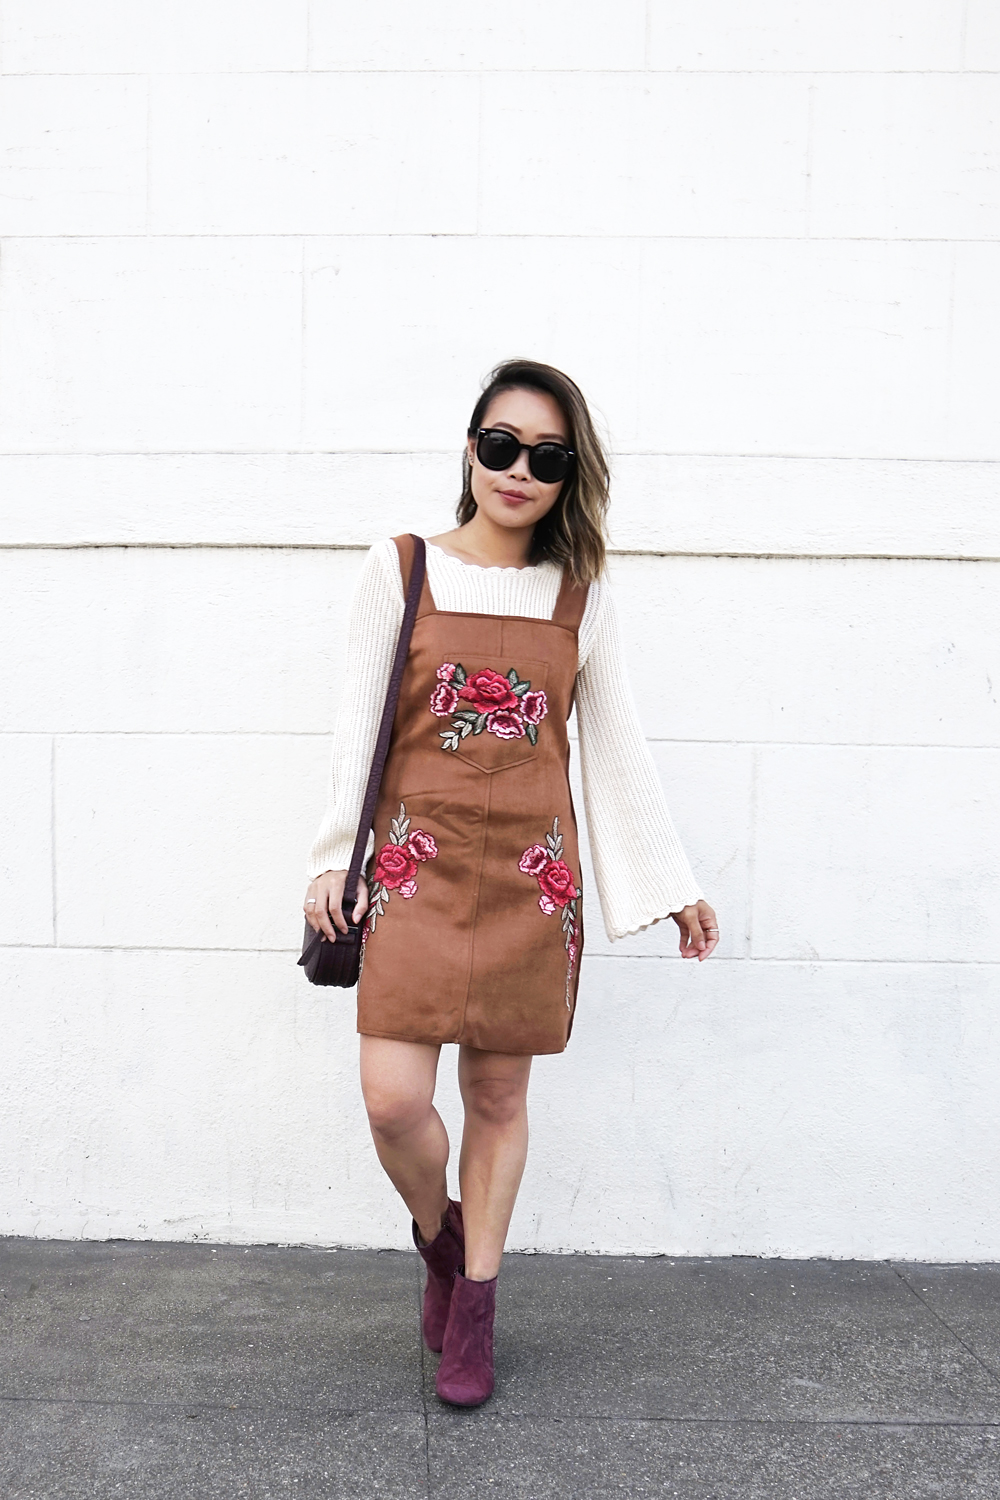 04hushpuppies-suede-boots-pinafore-floral-embroidery-fall-fashion-style